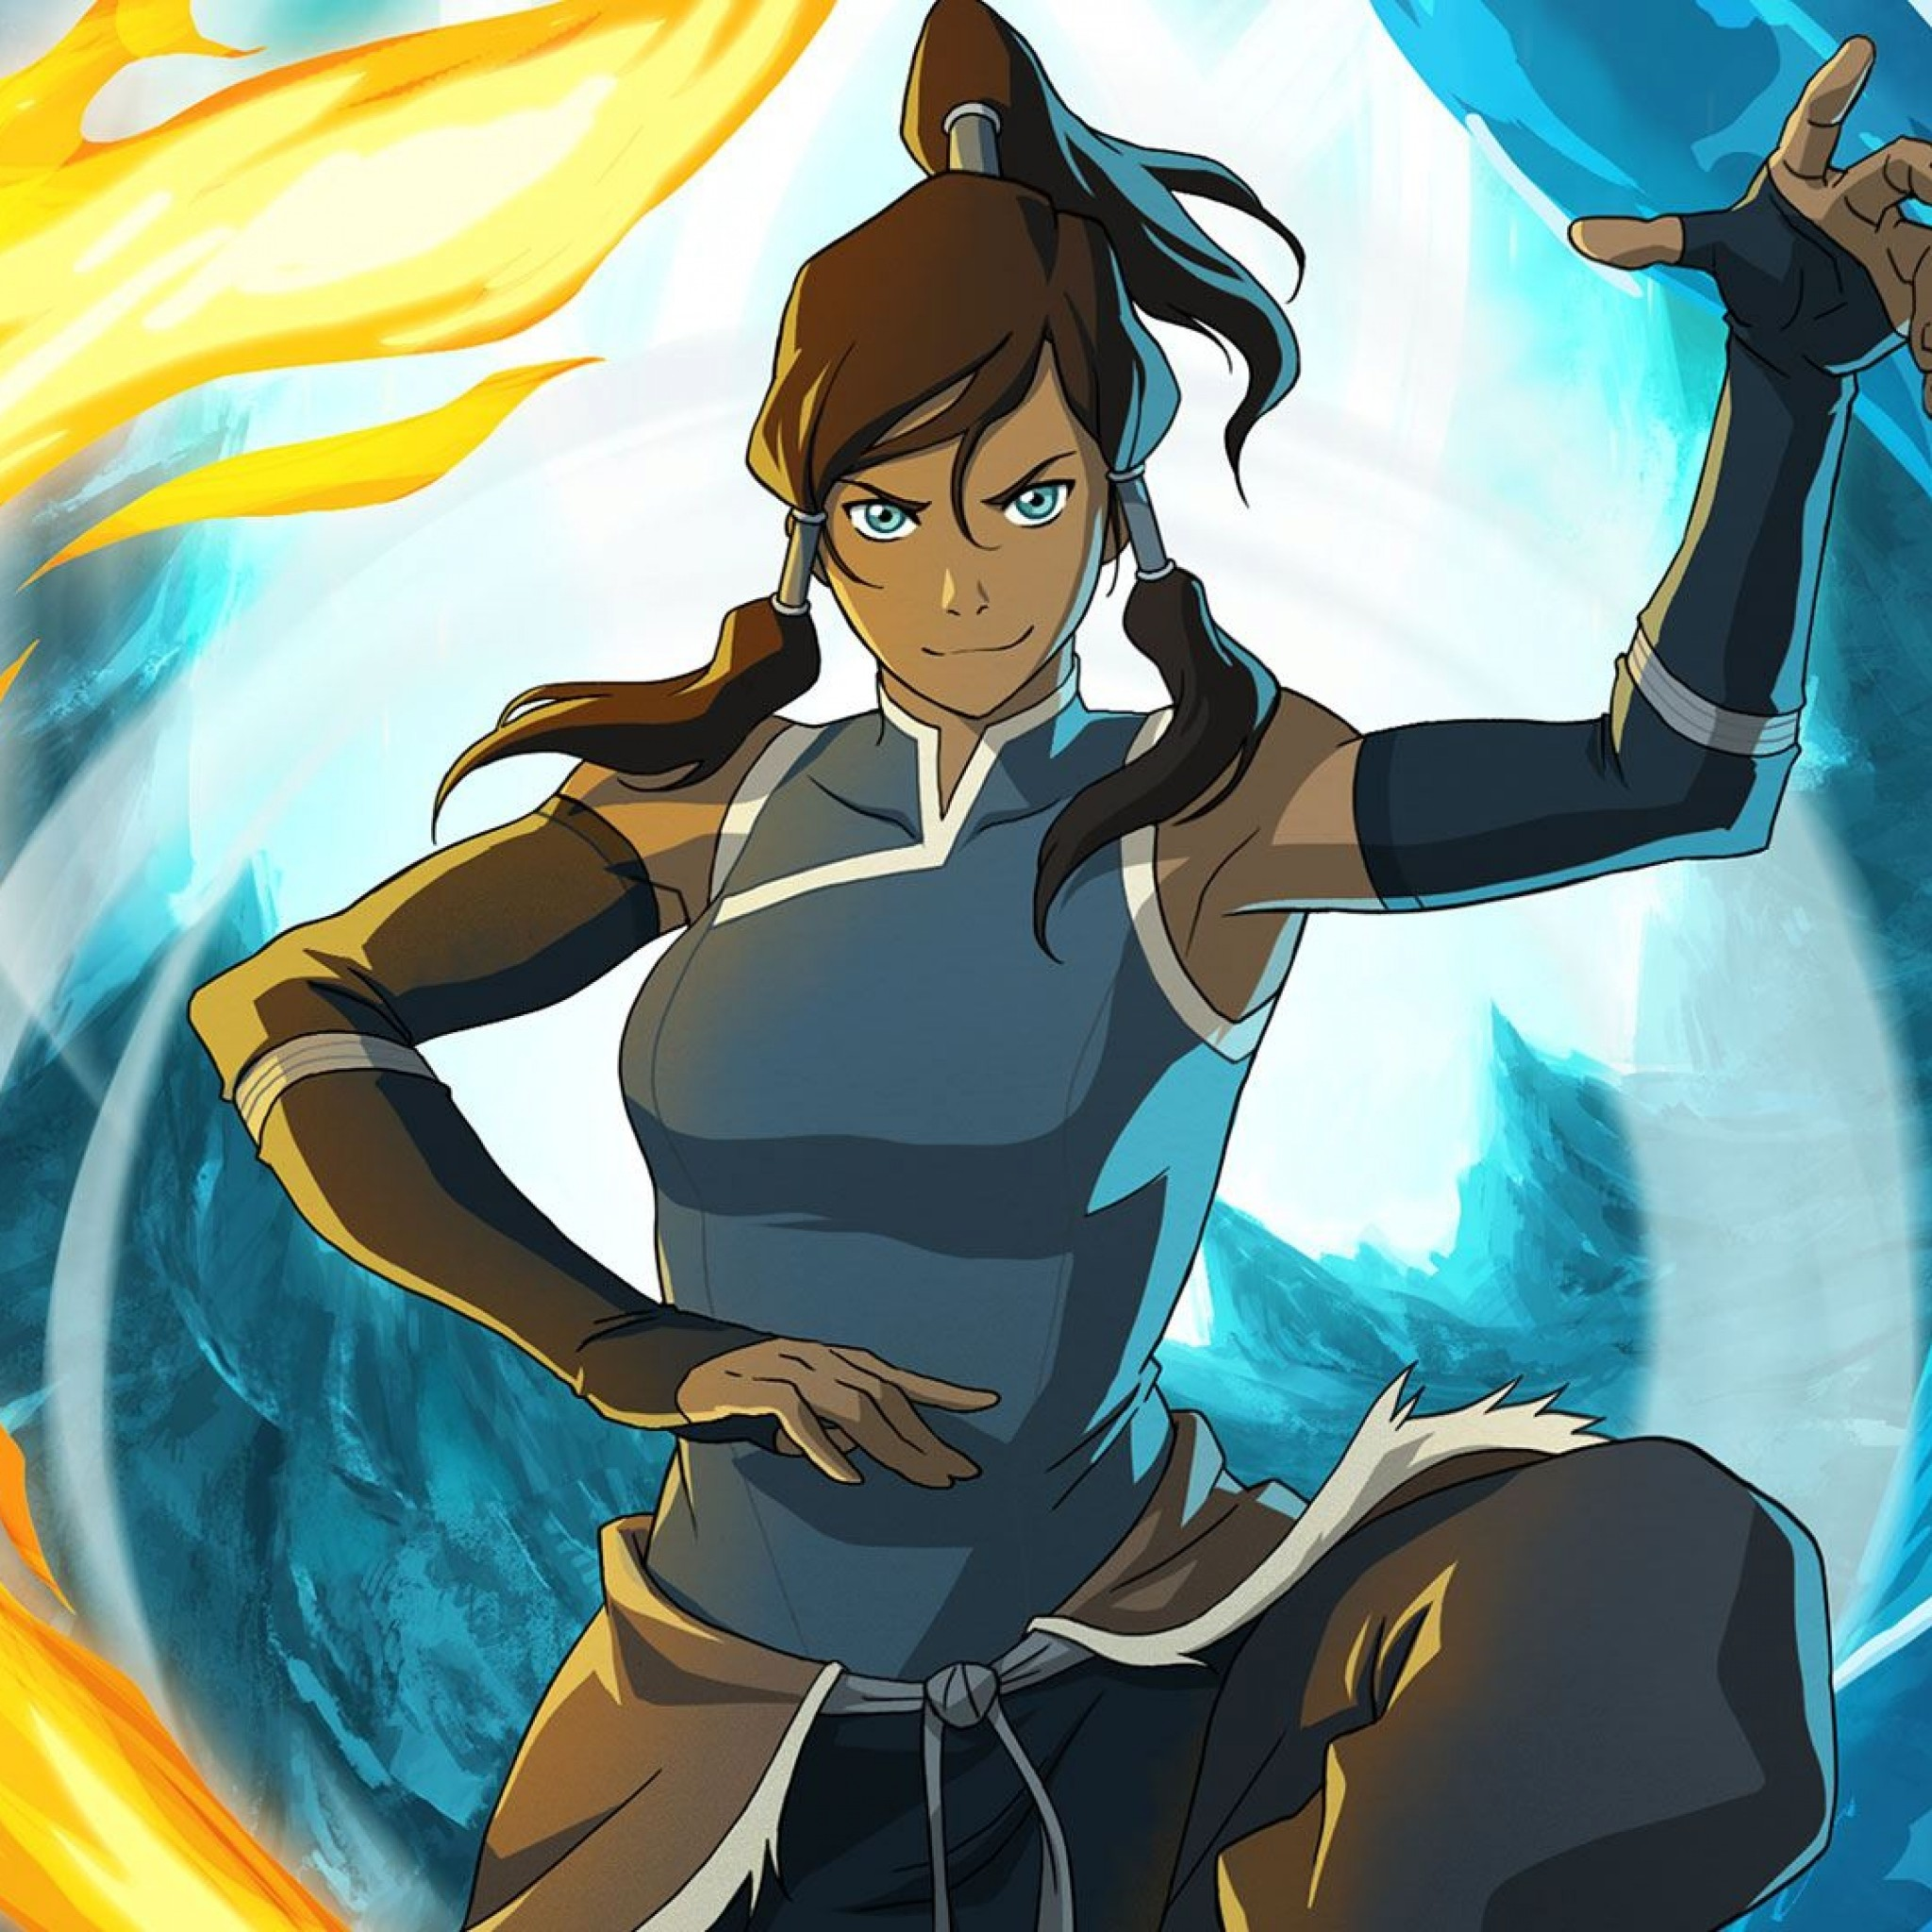 2048x2048 Preview wallpaper the legend of korra, avatar legend of the corre, girl,  magician